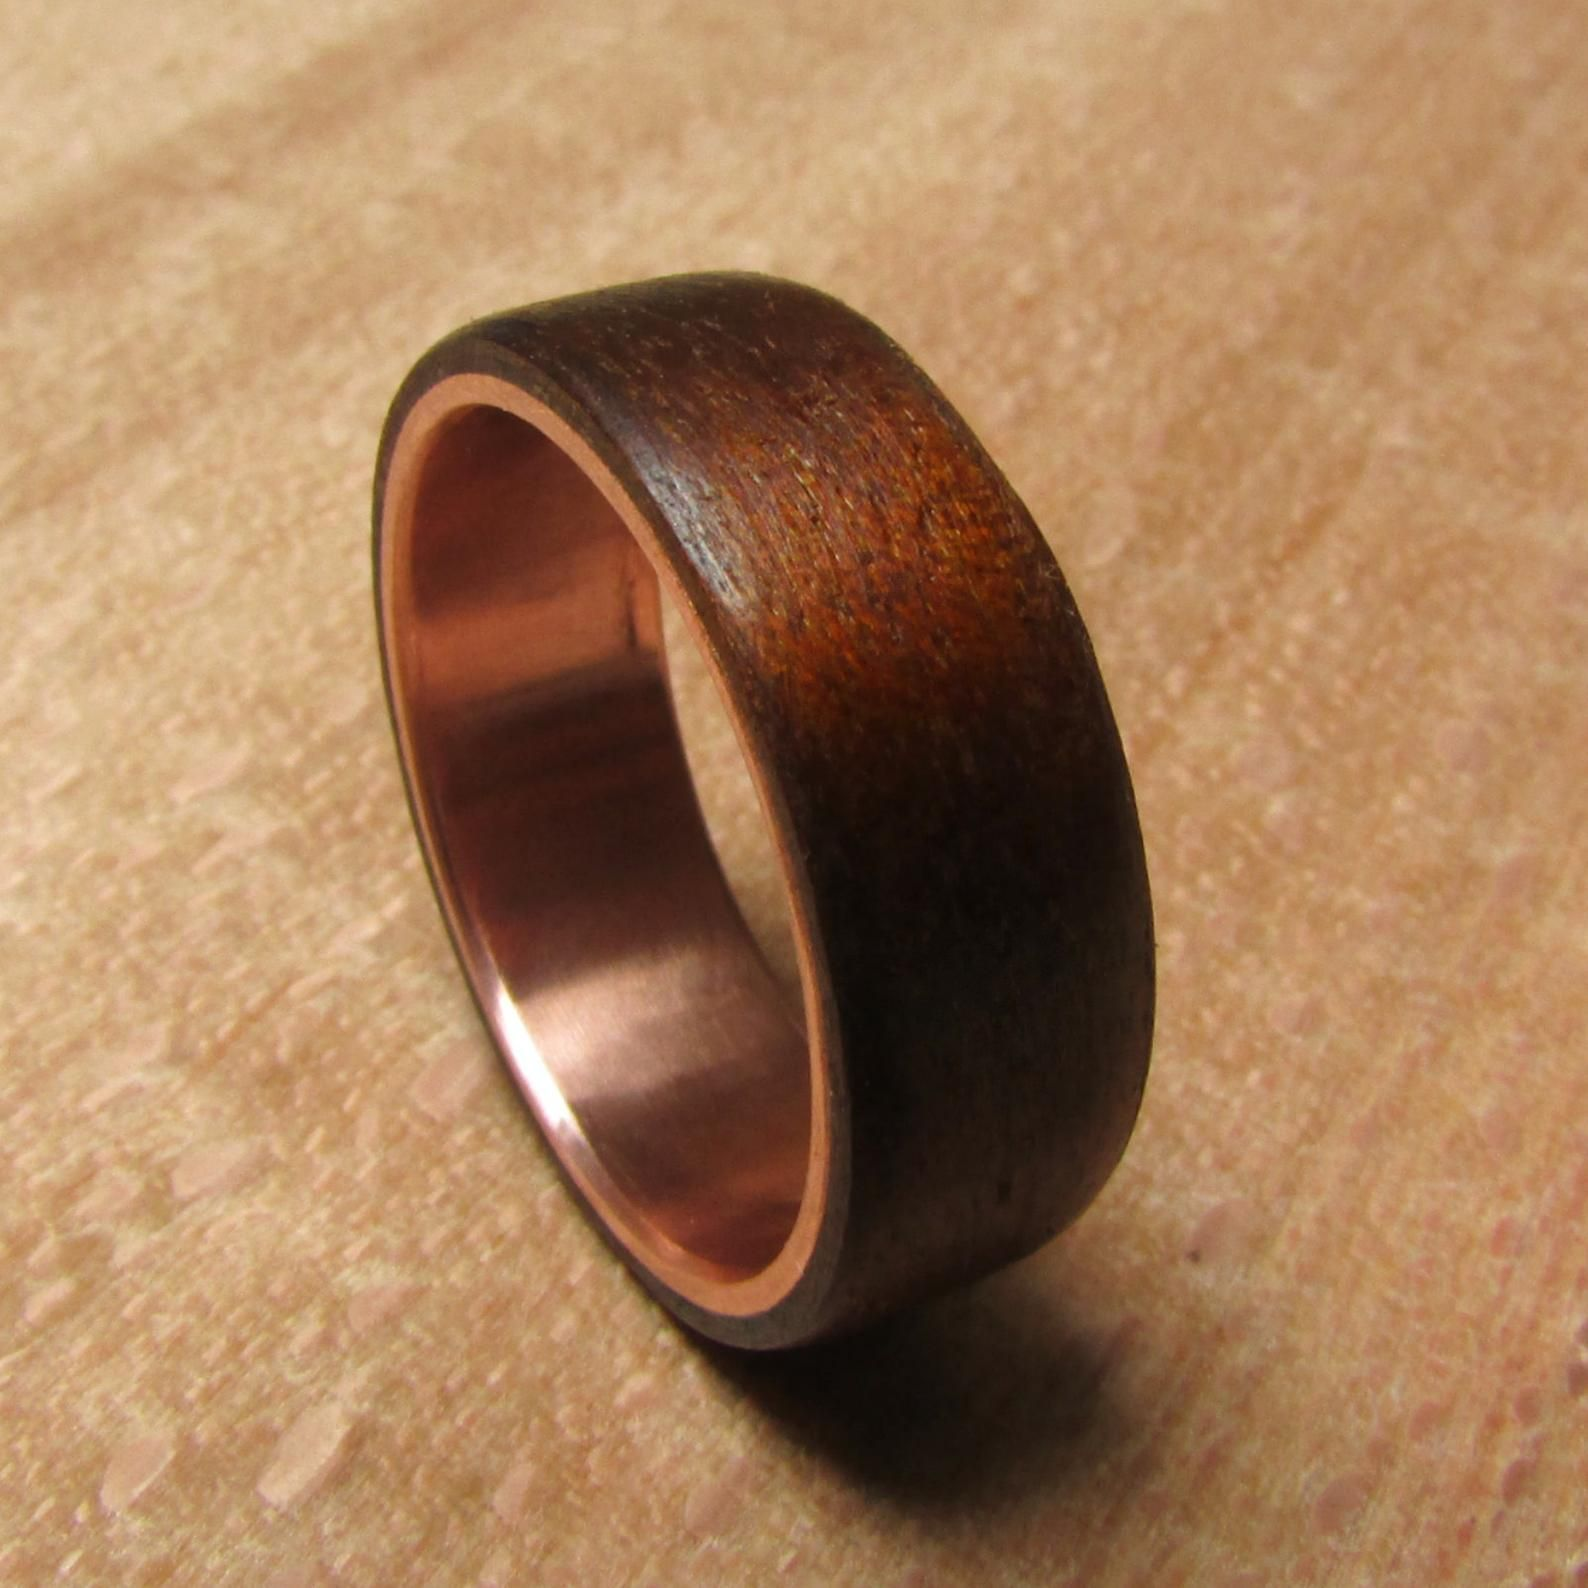 Fumed Aspen Wood And Copper Ring Rustic Mens Wedding Band 5th Anniversary Gift For Him Wooden Wedding Rings For Men Birthday Gift Ideas Wooden Wedding Ring Wooden Wedding Bands Mens Rustic